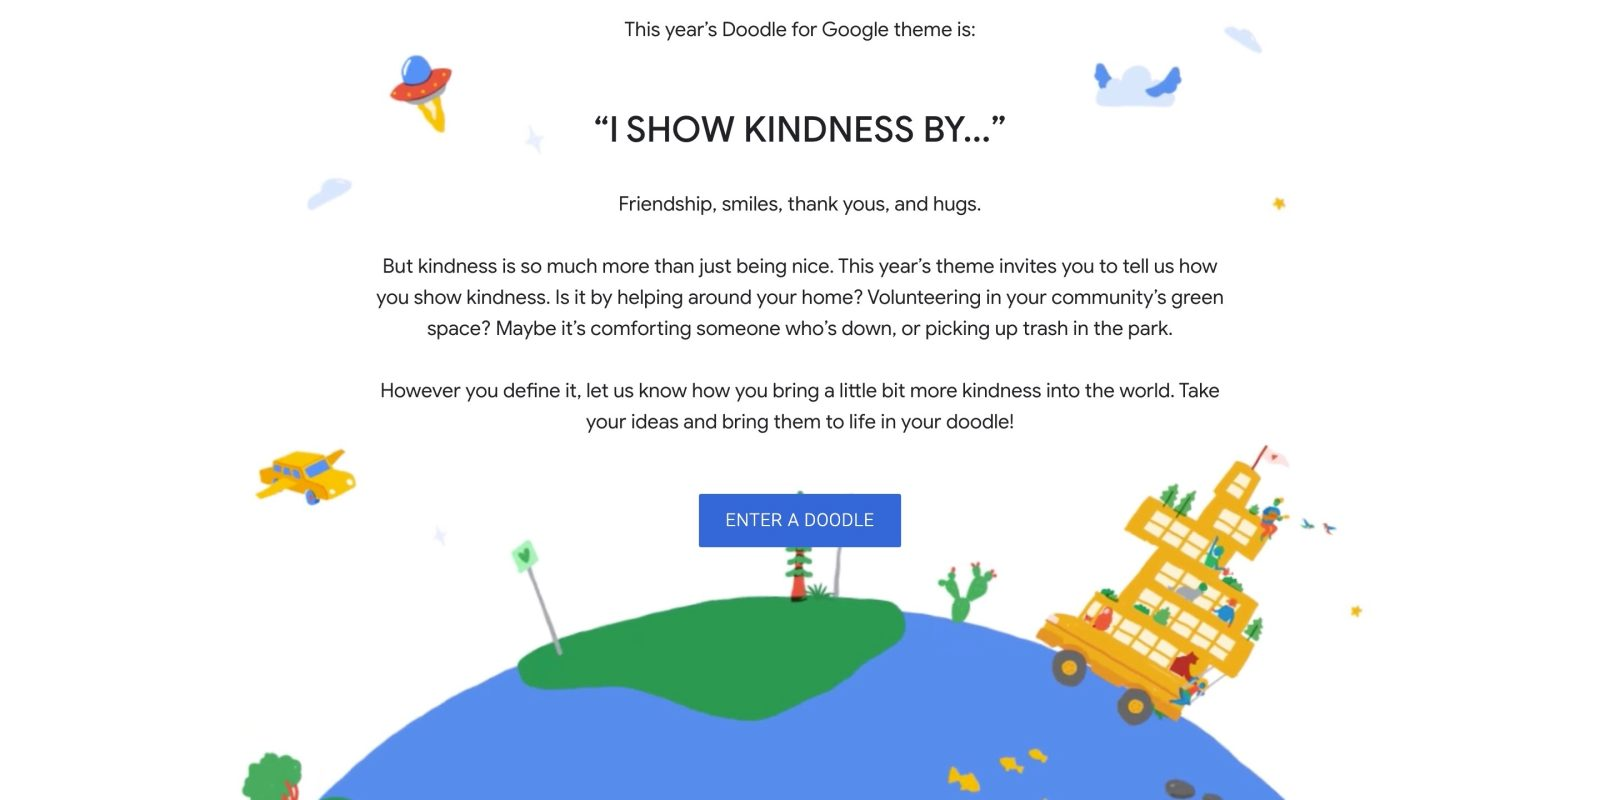 doodle for google 2020 now open i show kindness by 9to5google doodle for google 2020 now open i